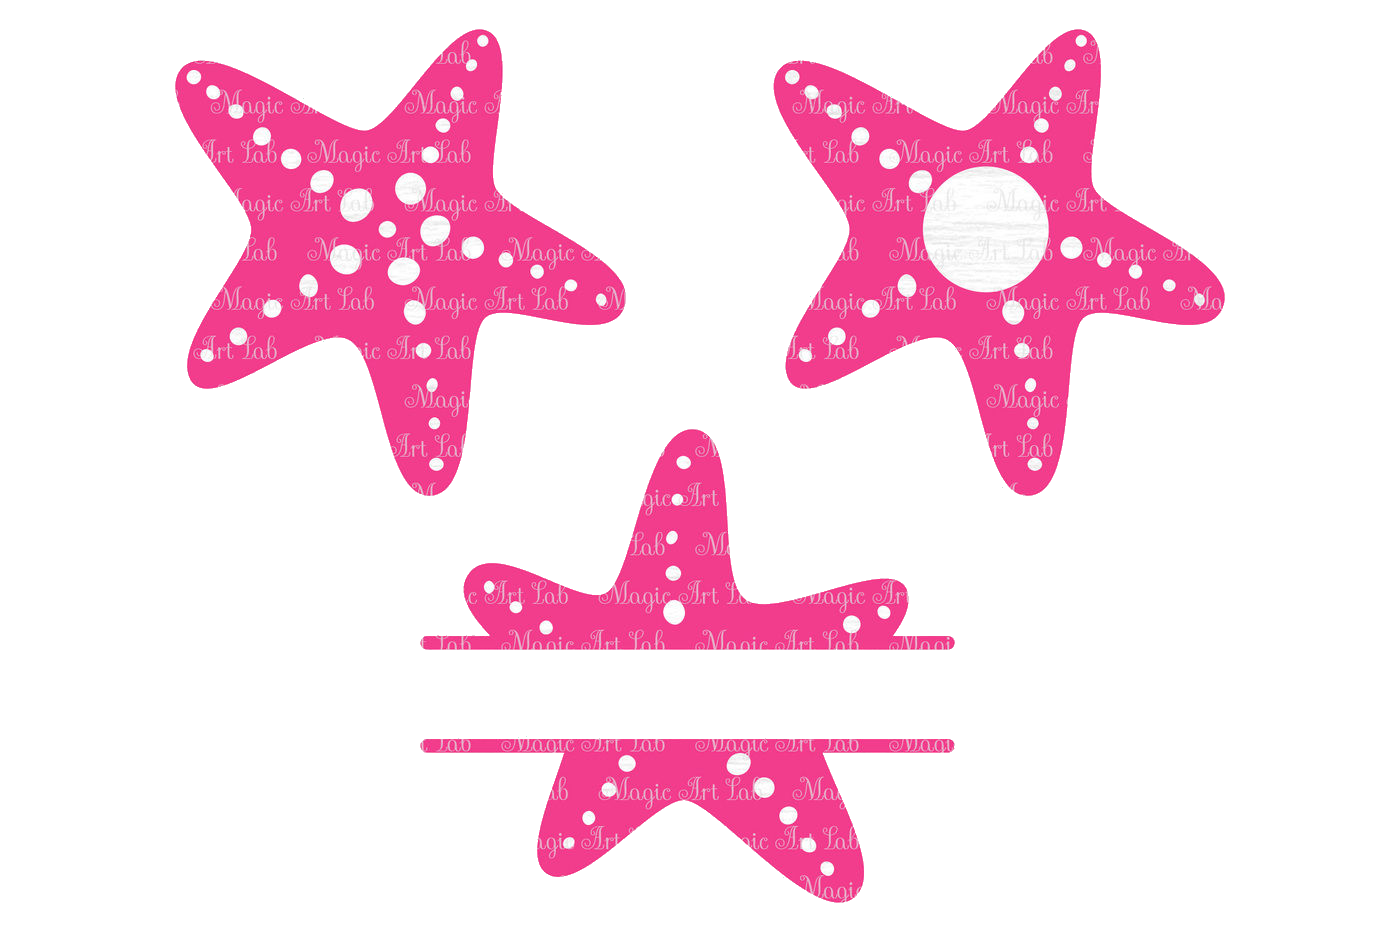 Sea star vector clipart banner royalty free Starfish Cut File Clipart Sea Star Vector Transparent Png ... banner royalty free